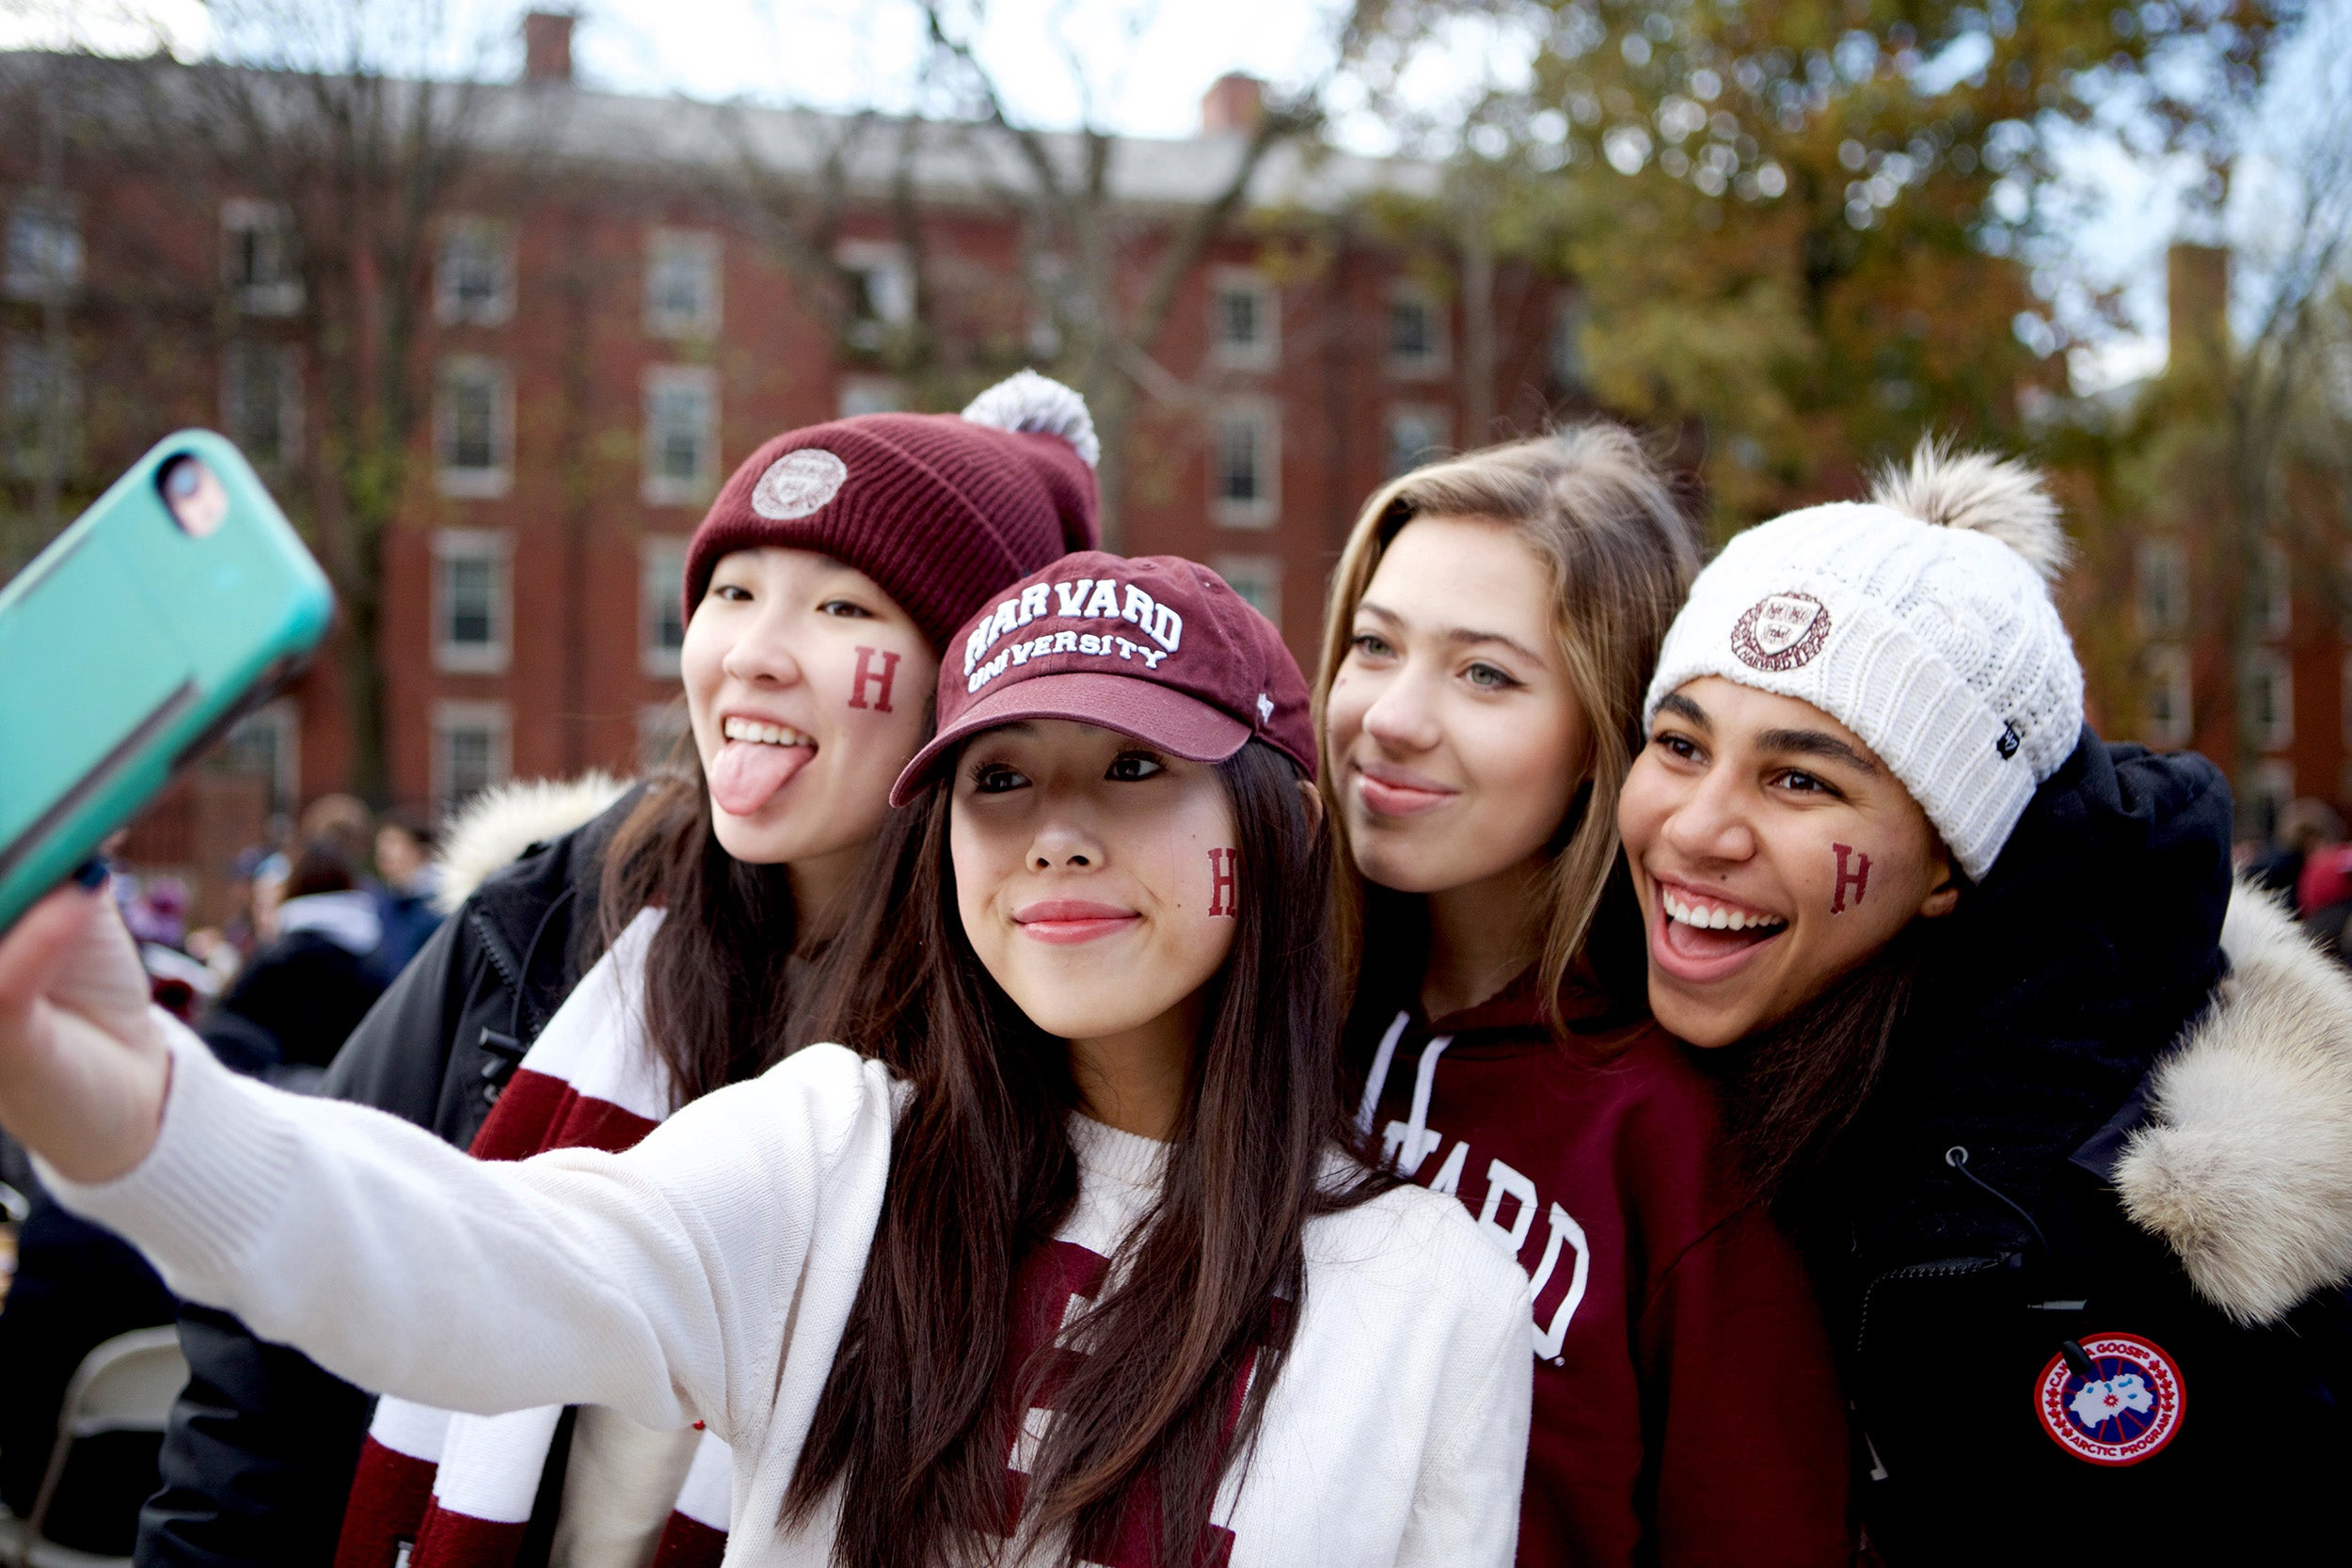 Harvard students Lucy Lu (from left), Elyse Pham, Isabel Isselbacher, and Alexandra Diggs pose for a selfie at a tailgate party in Science Center Plaza before they headed to the Harvard-Yale game at Fenway Park. Photo by Olivia Falcigno